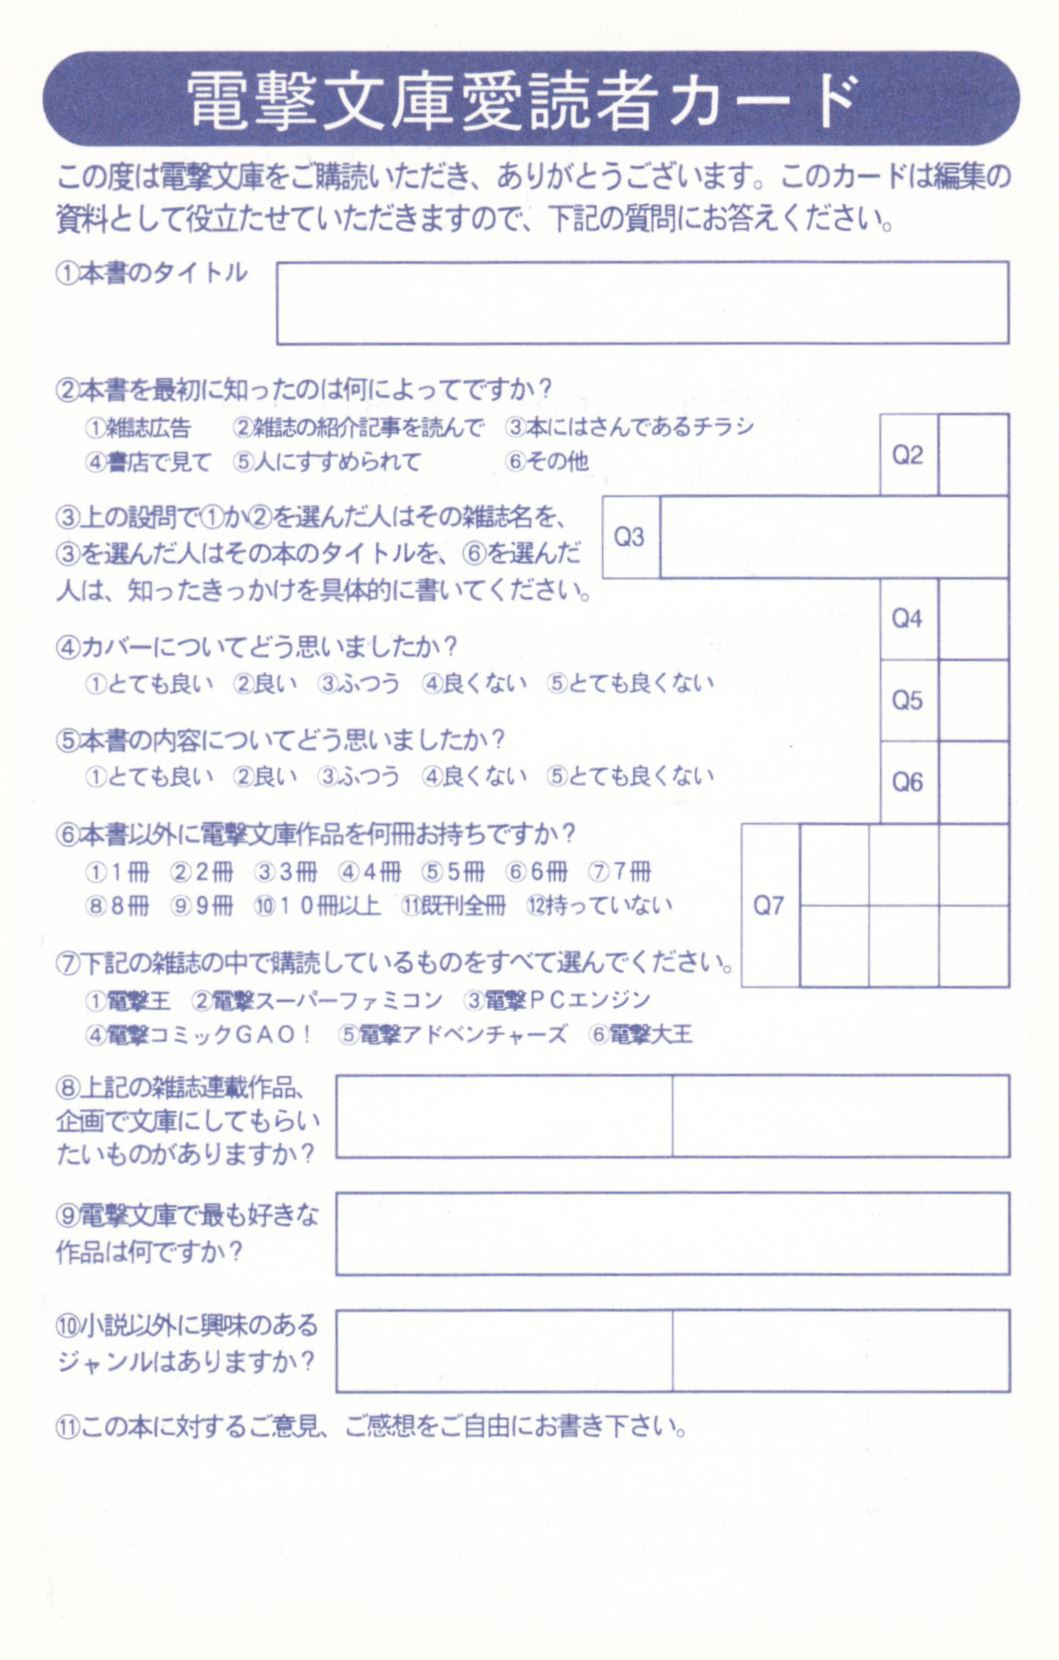 Novel - Dungeon Master II - JP - Registration Card - Back - Scan